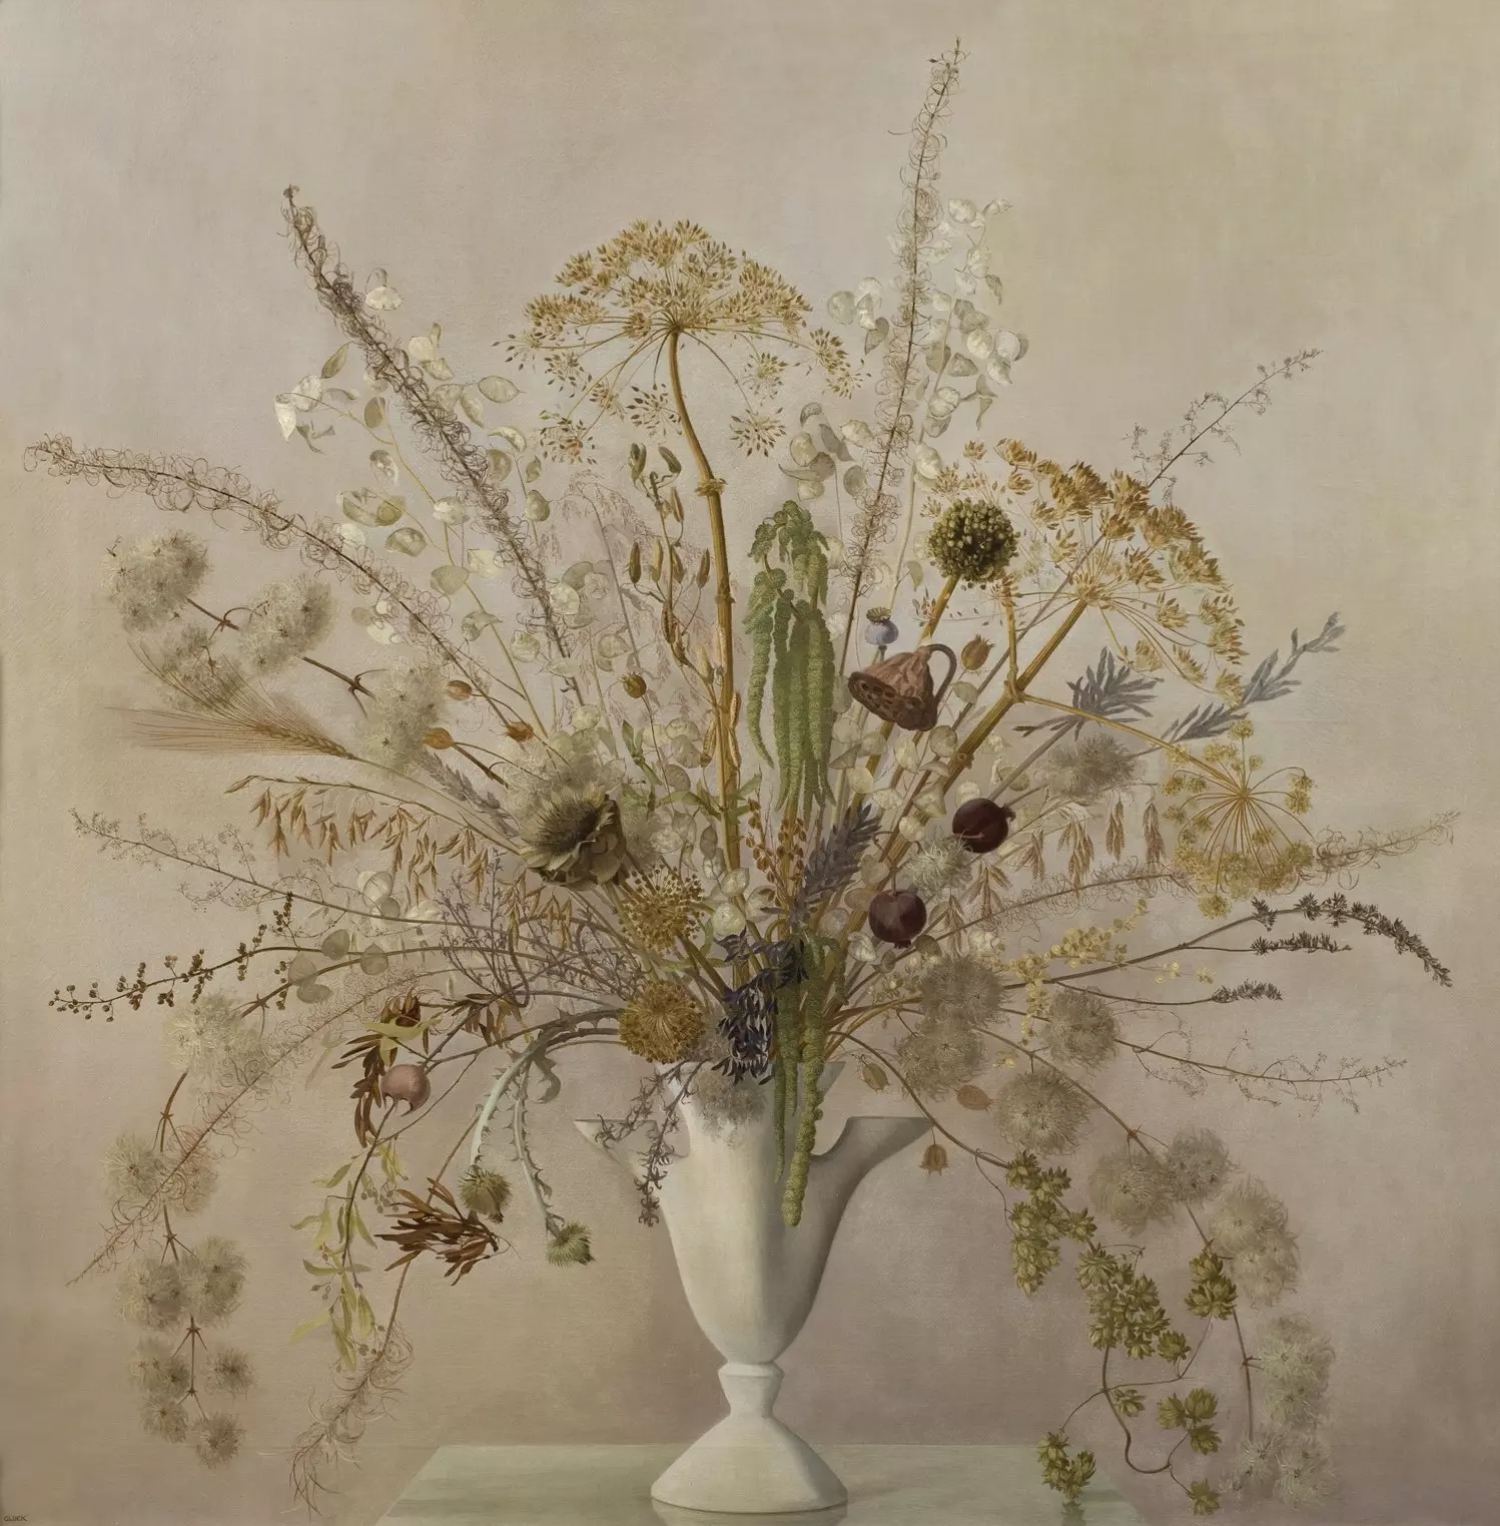 Nature Morte, 1937, by Hannah Gluckstein